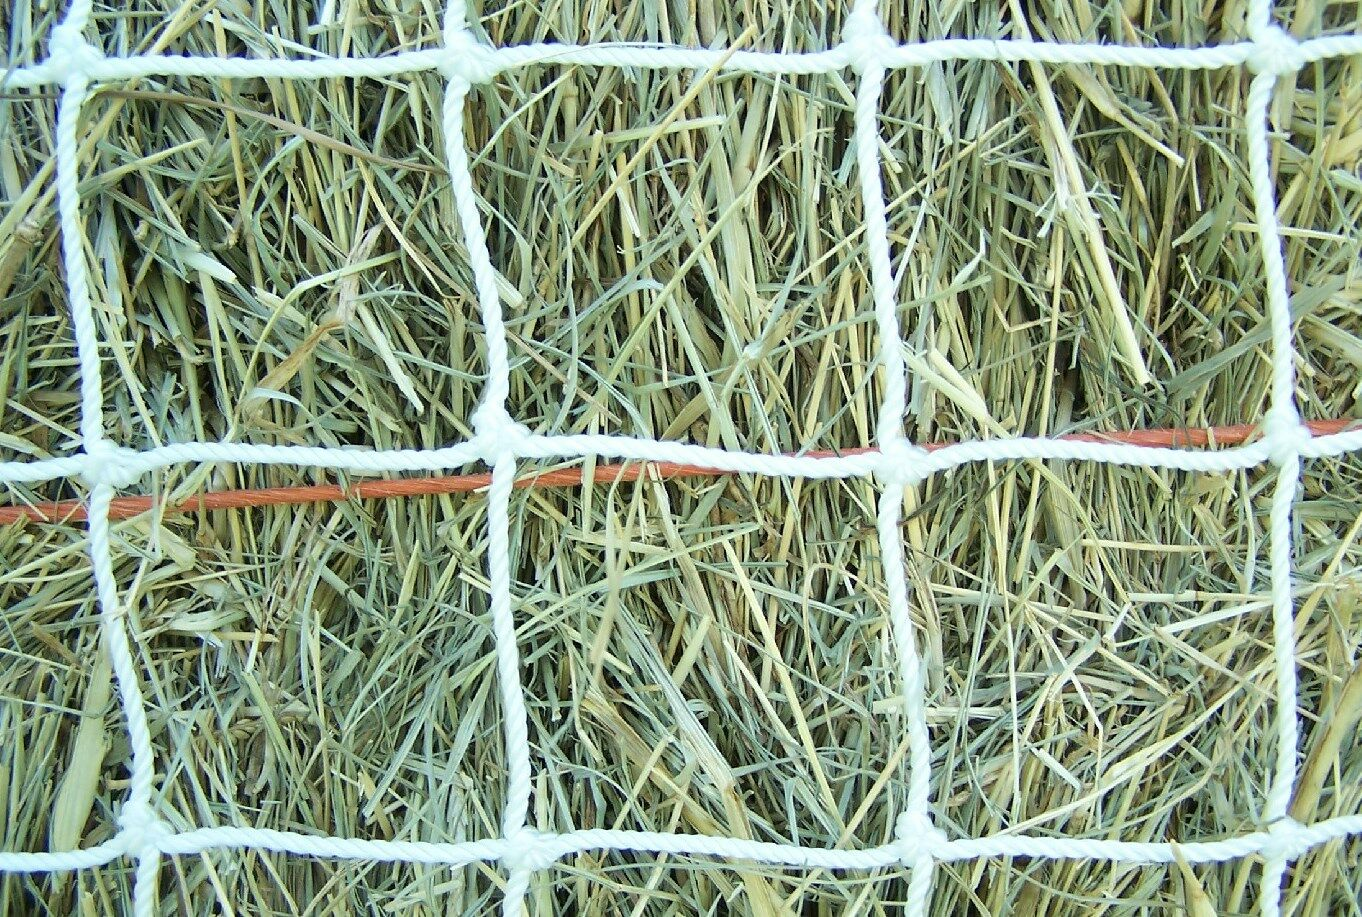 20' x 16' WHITE SQUARE NET NYLON HORSE HAY NETTING  2  LB TEST BALE NETS